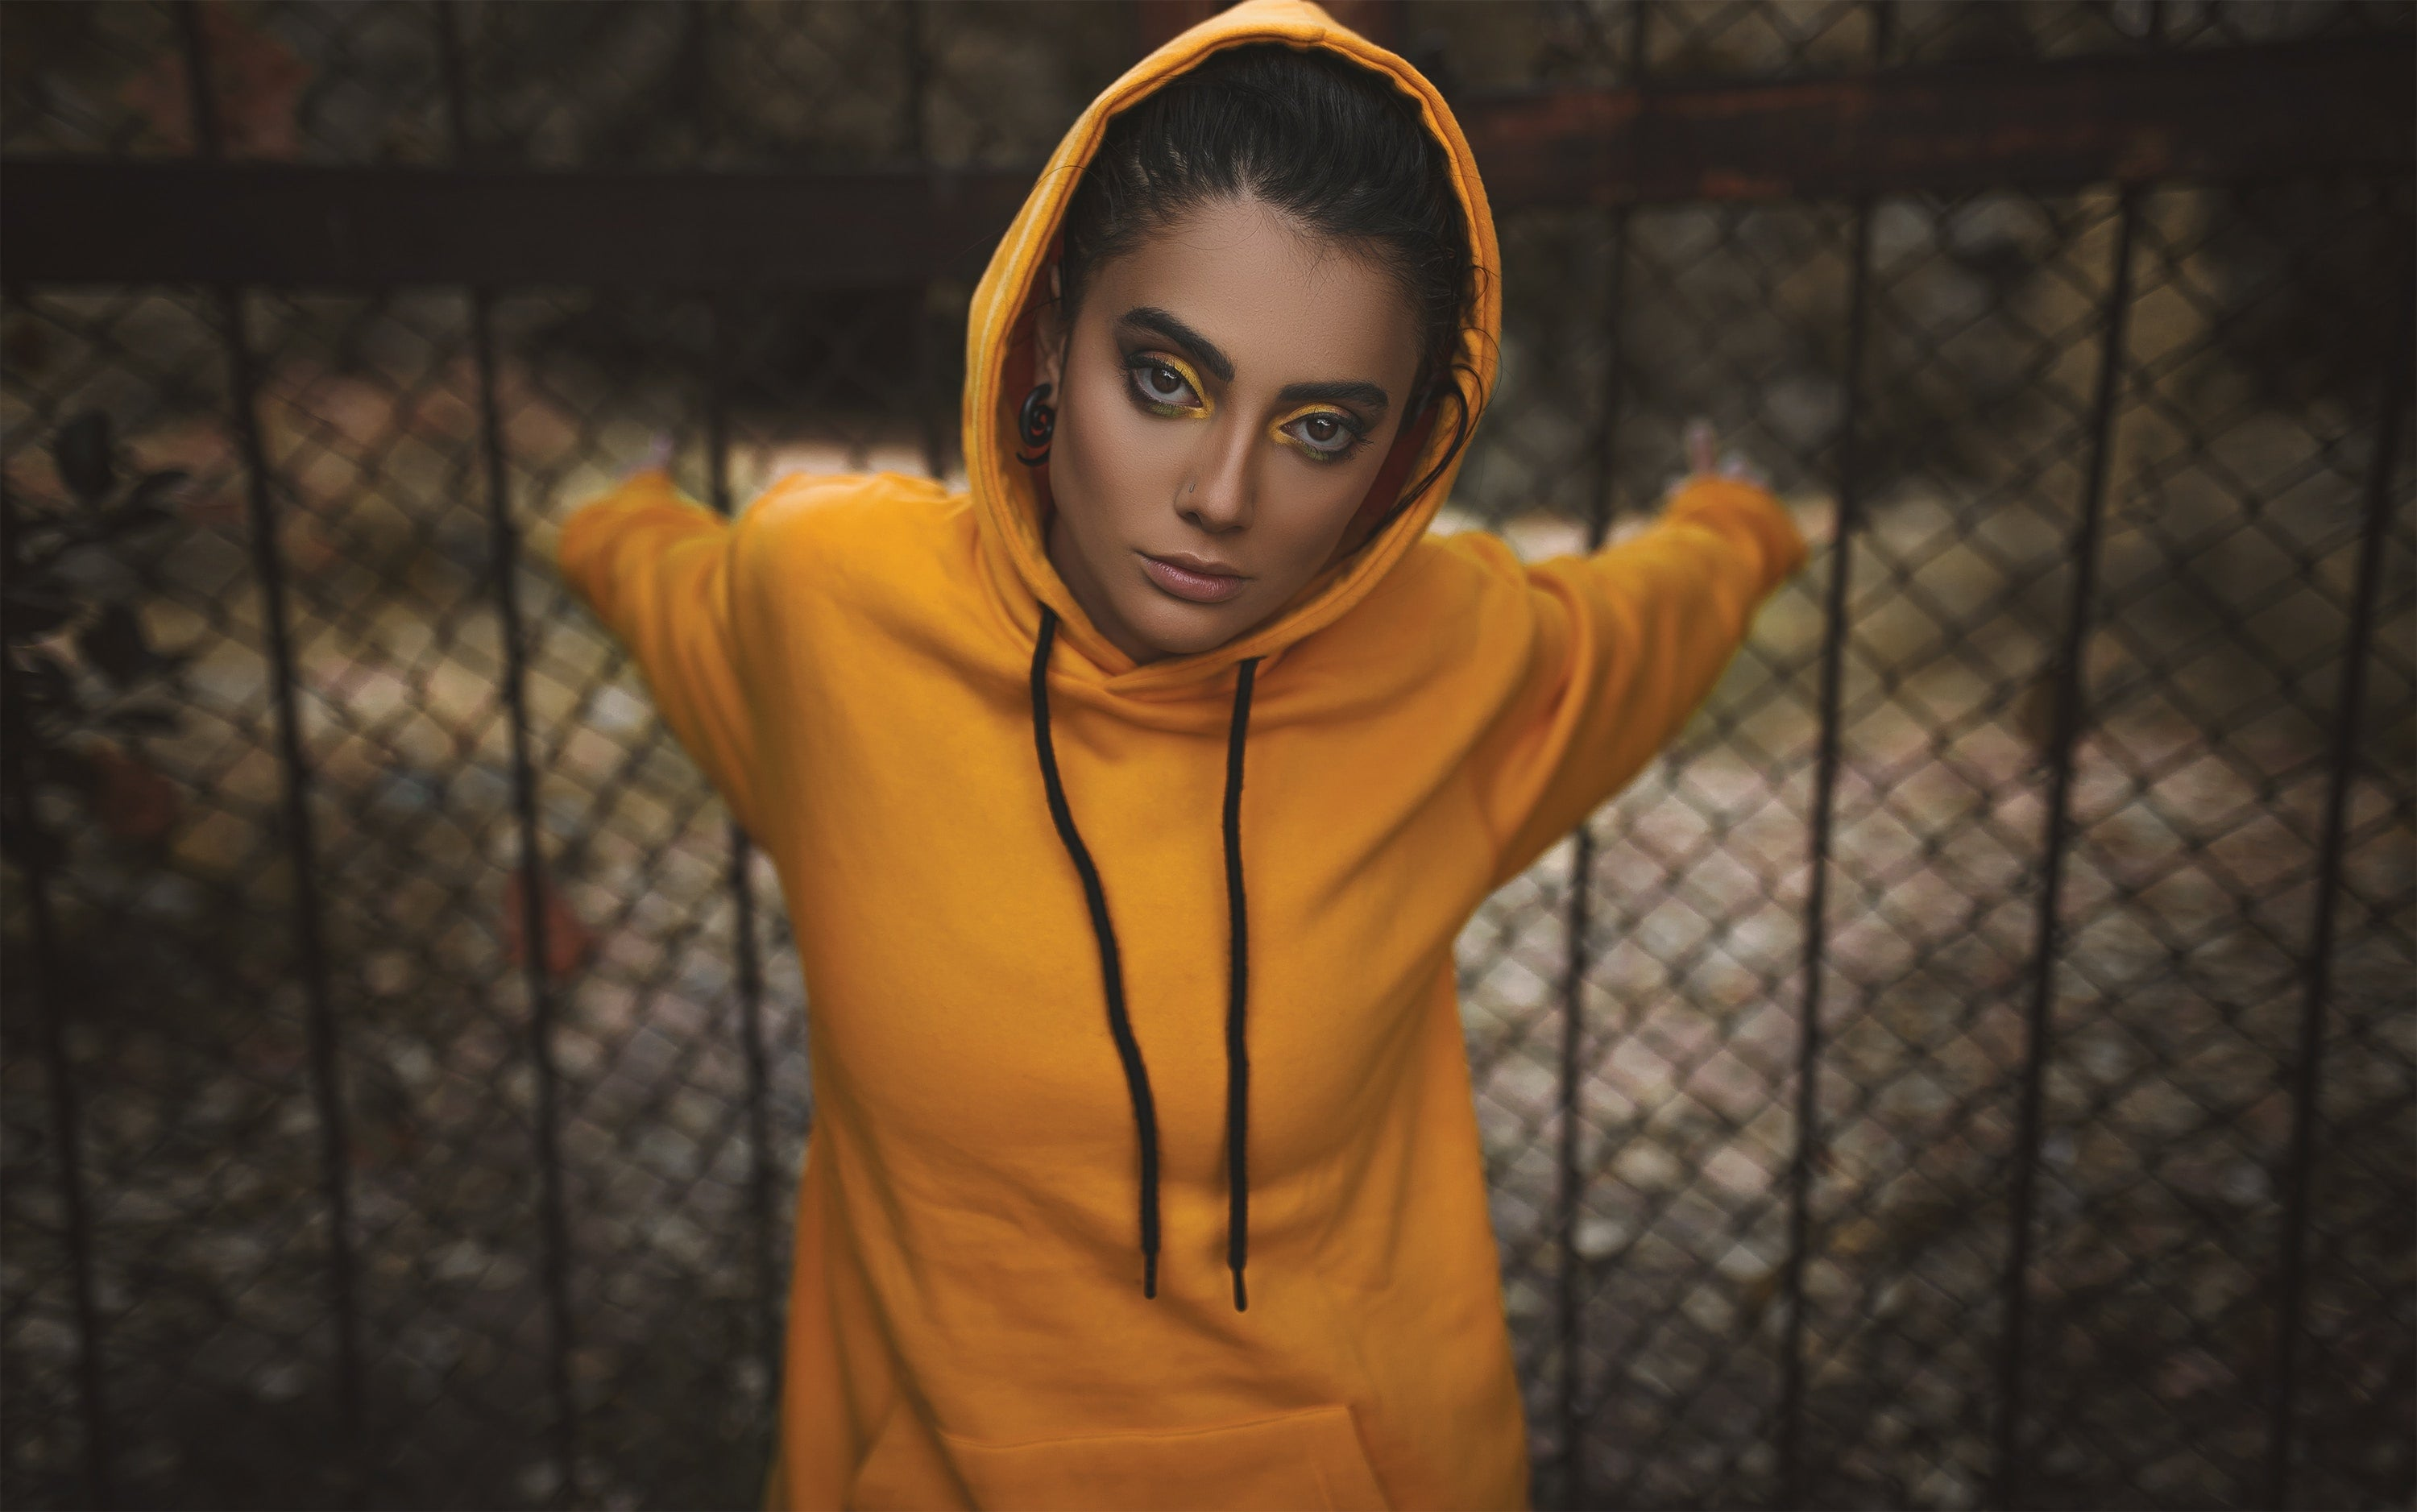 Yellow hoodie worn by a woman